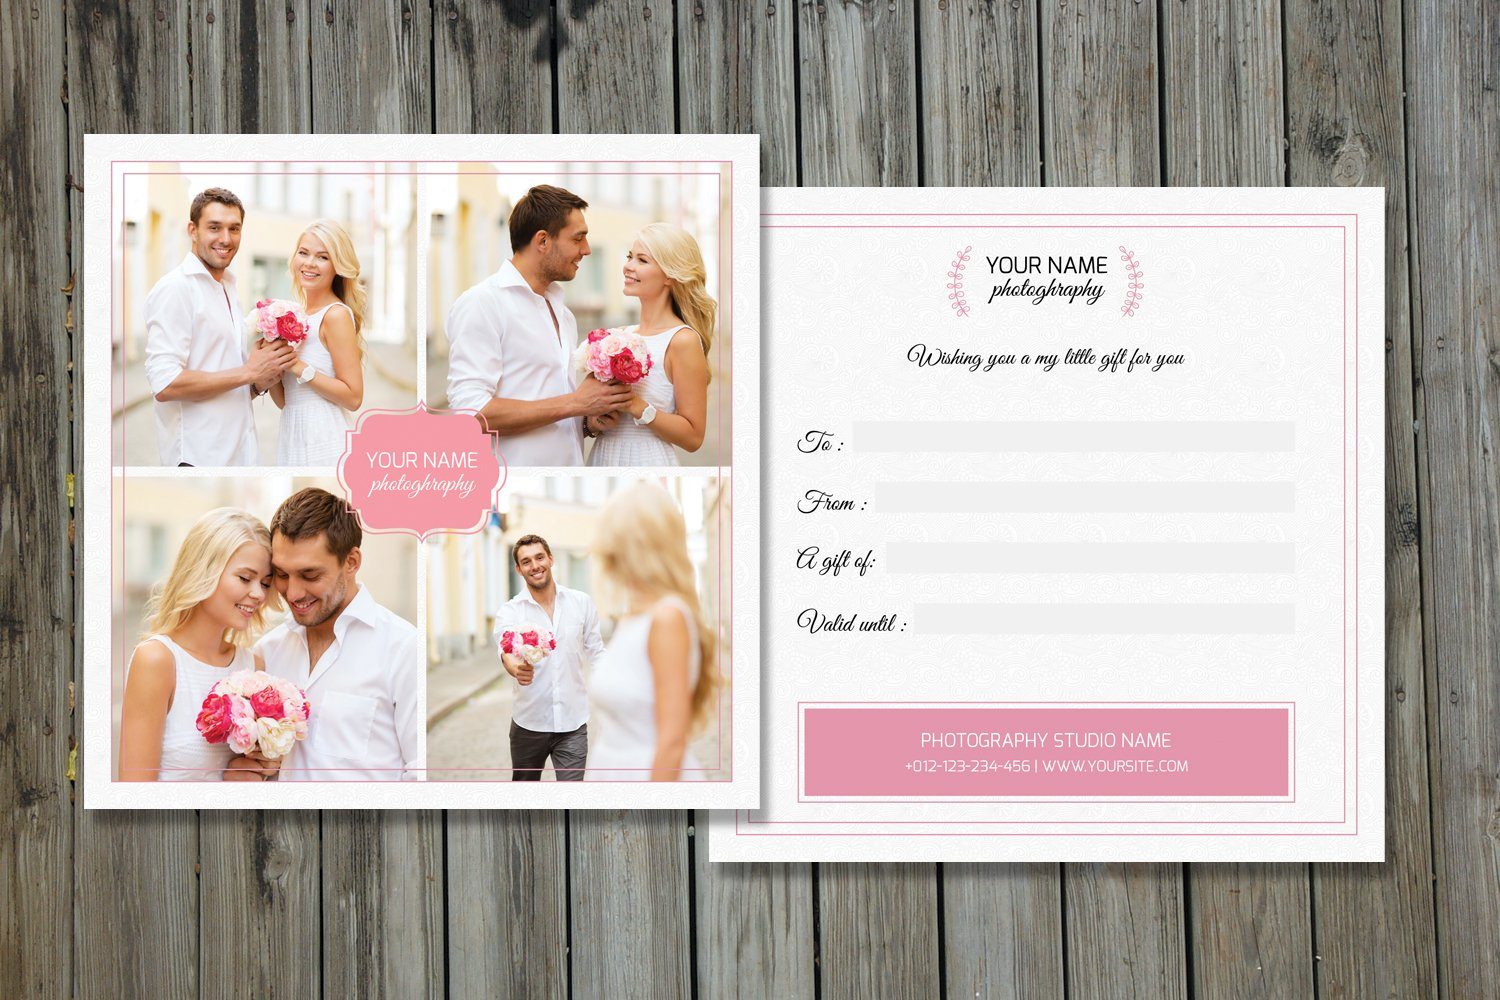 free printable photography gift certificate template - photographer gift certificate v01 card templates